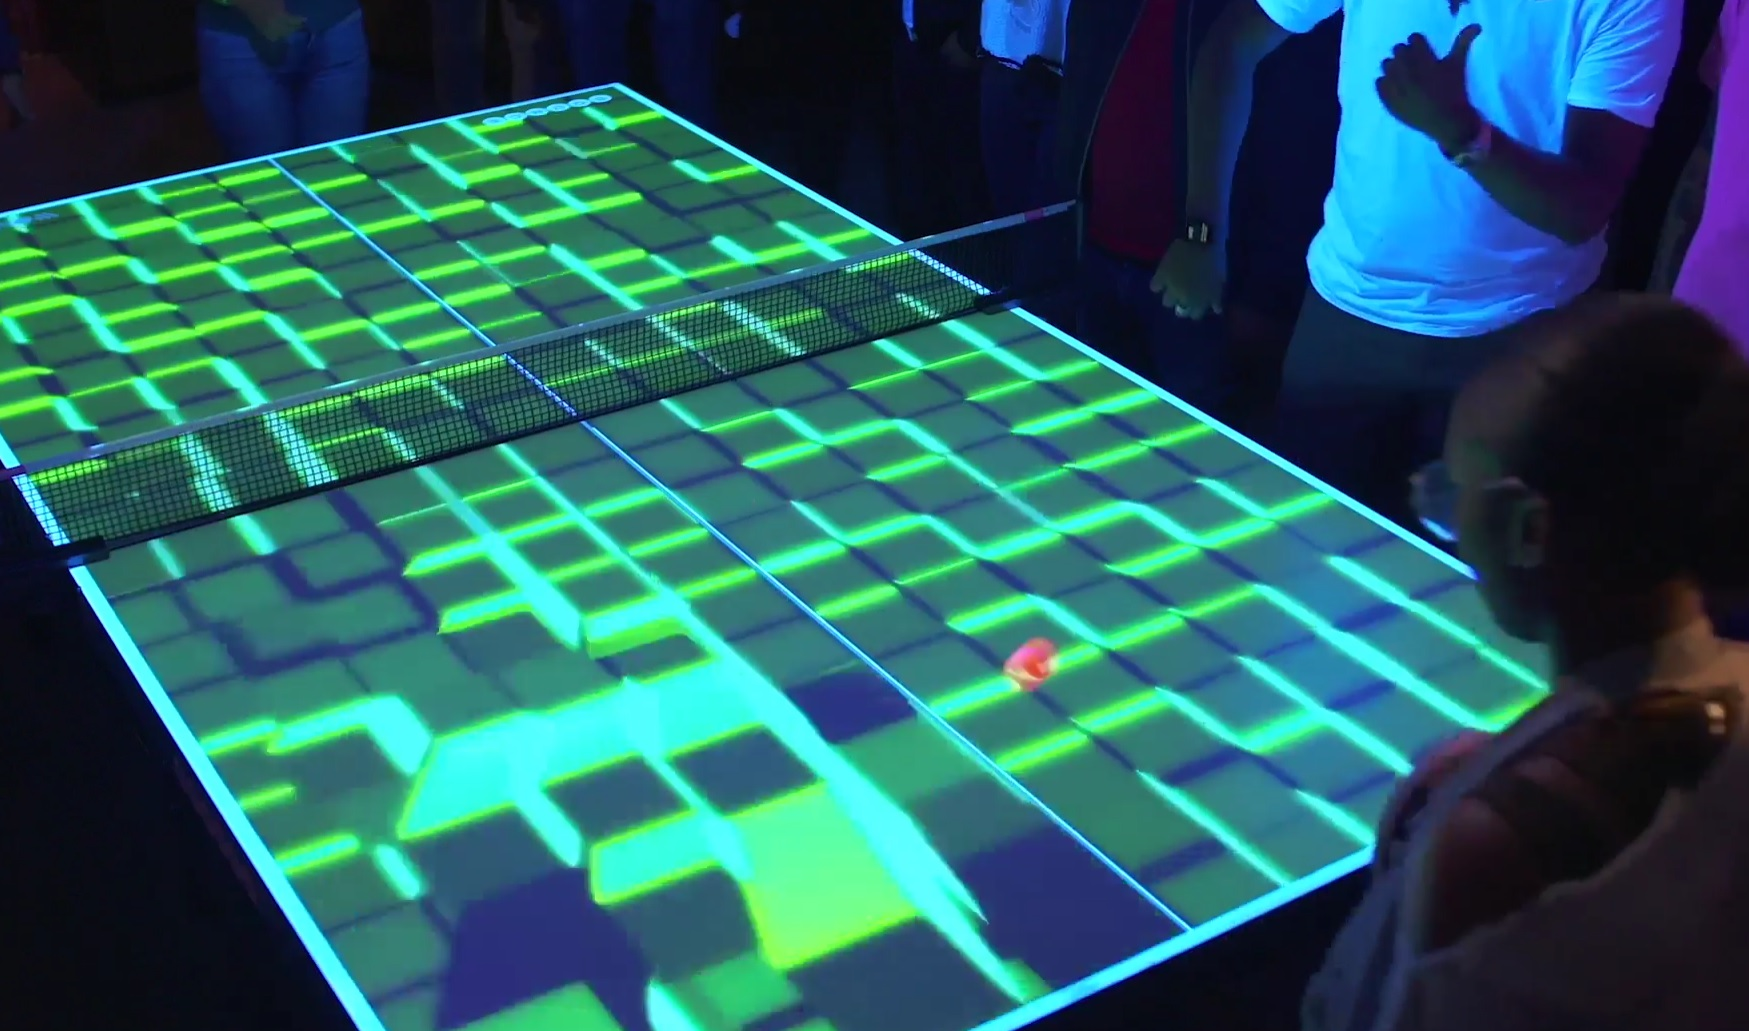 Bounce has launched Wonderball, which uses laser projection mapping and ball-tracking technology